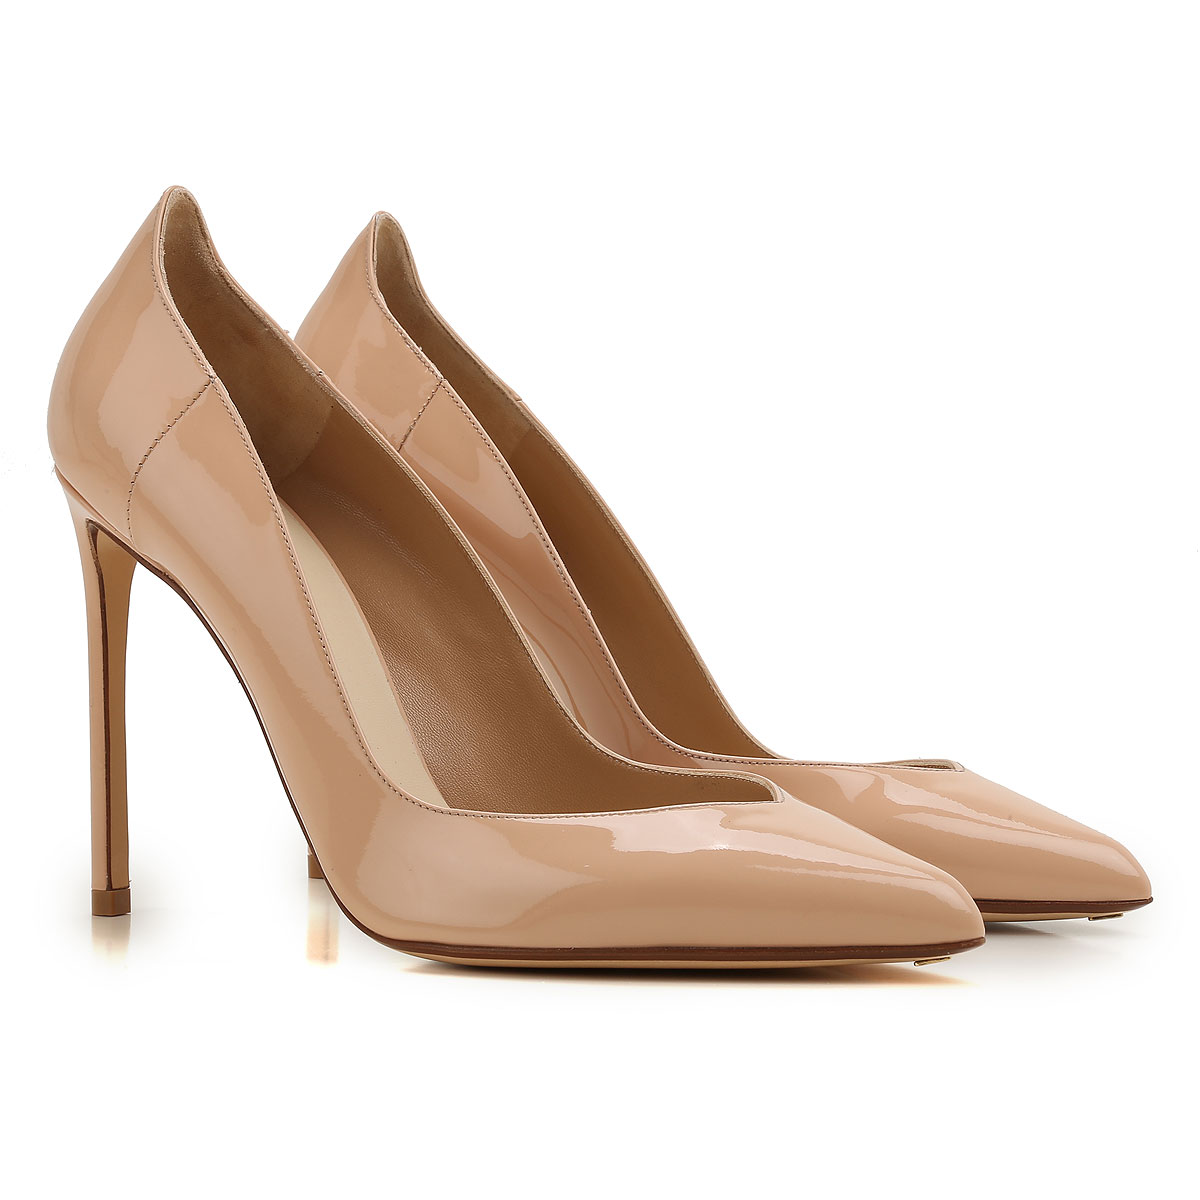 Image of Francesco Russo Pumps & High Heels for Women On Sale, skin, Patent Leather, 2017, 7 9